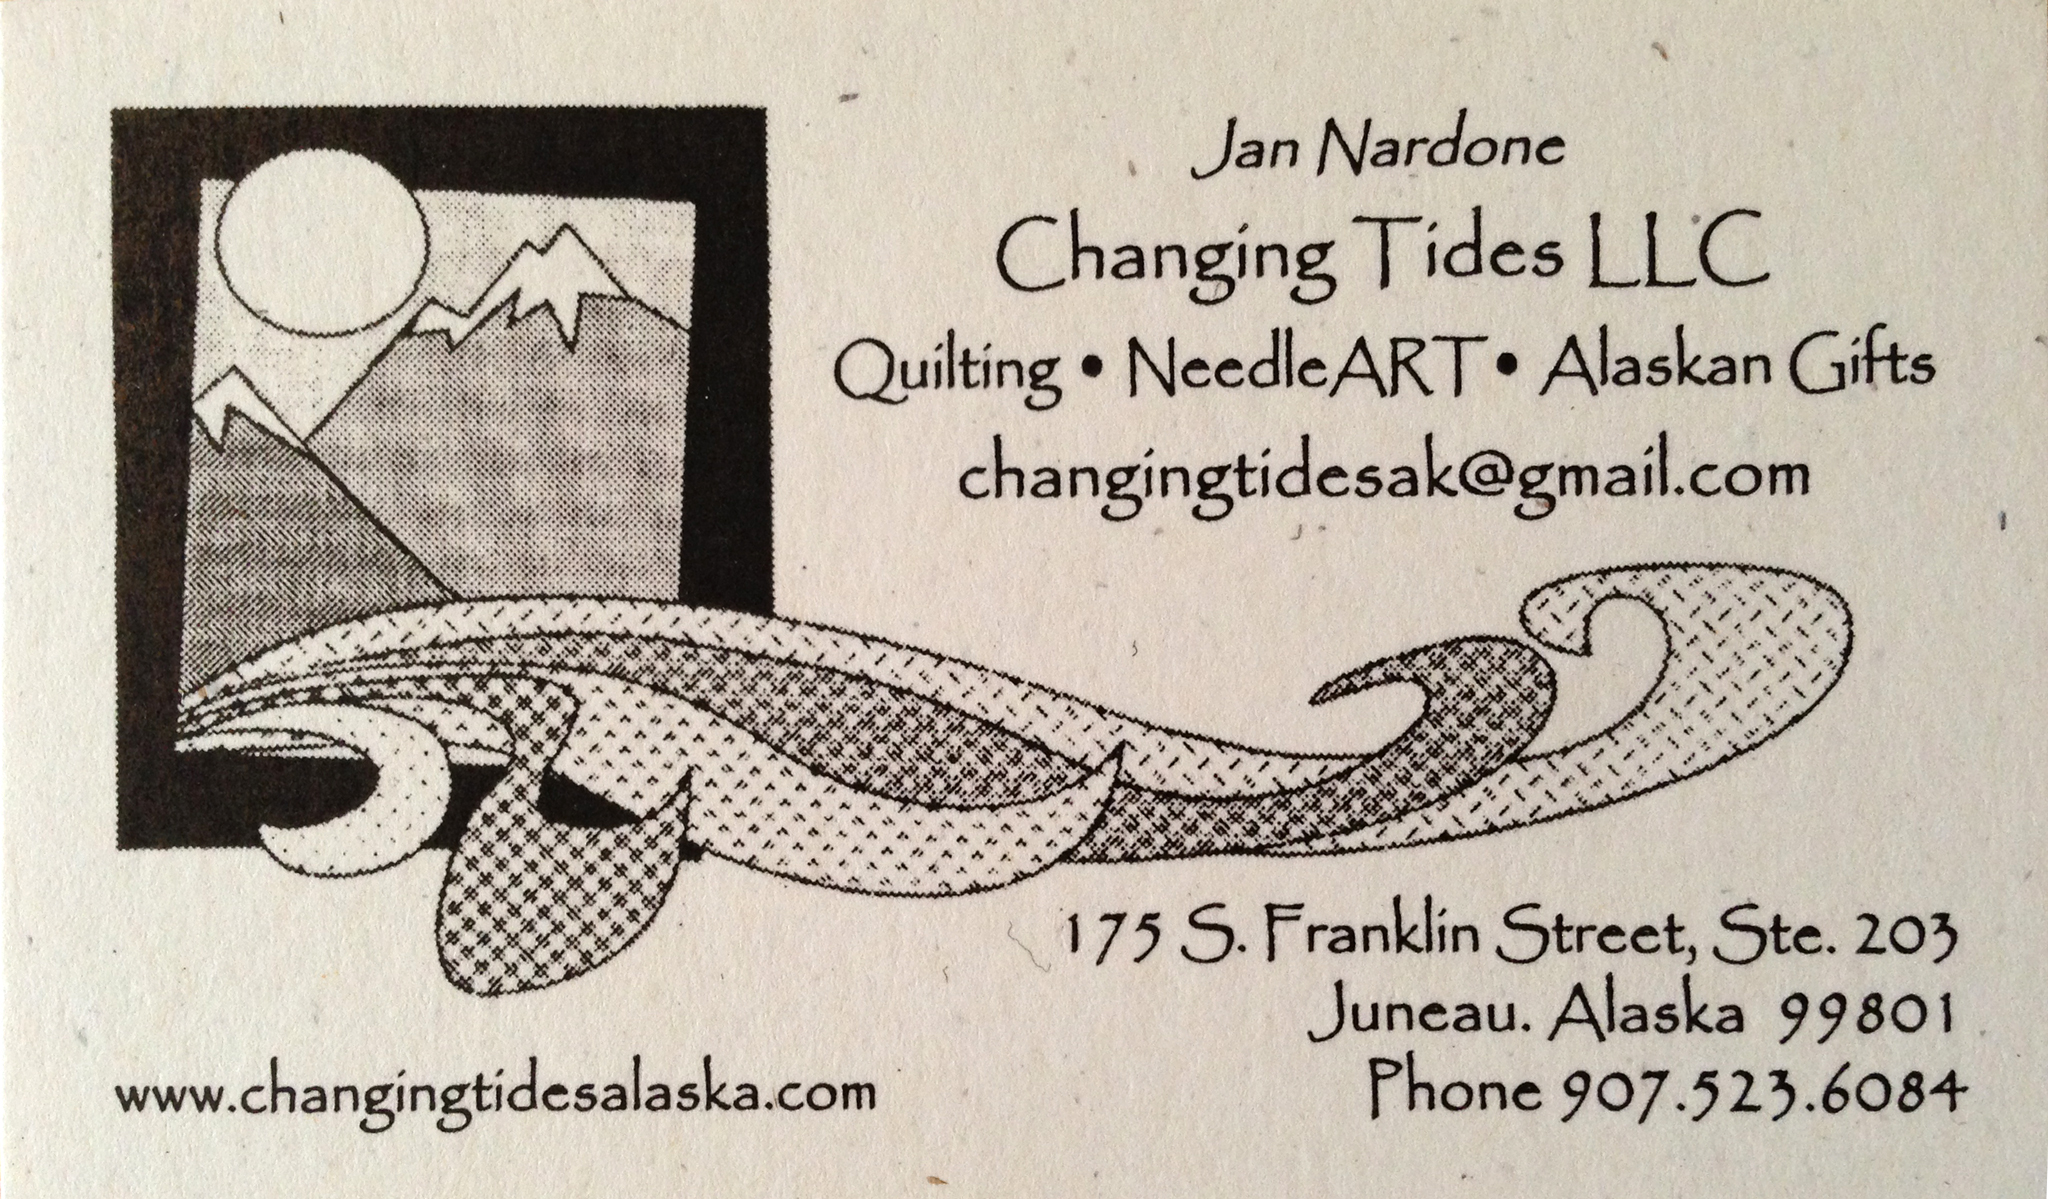 Changing Tides business card